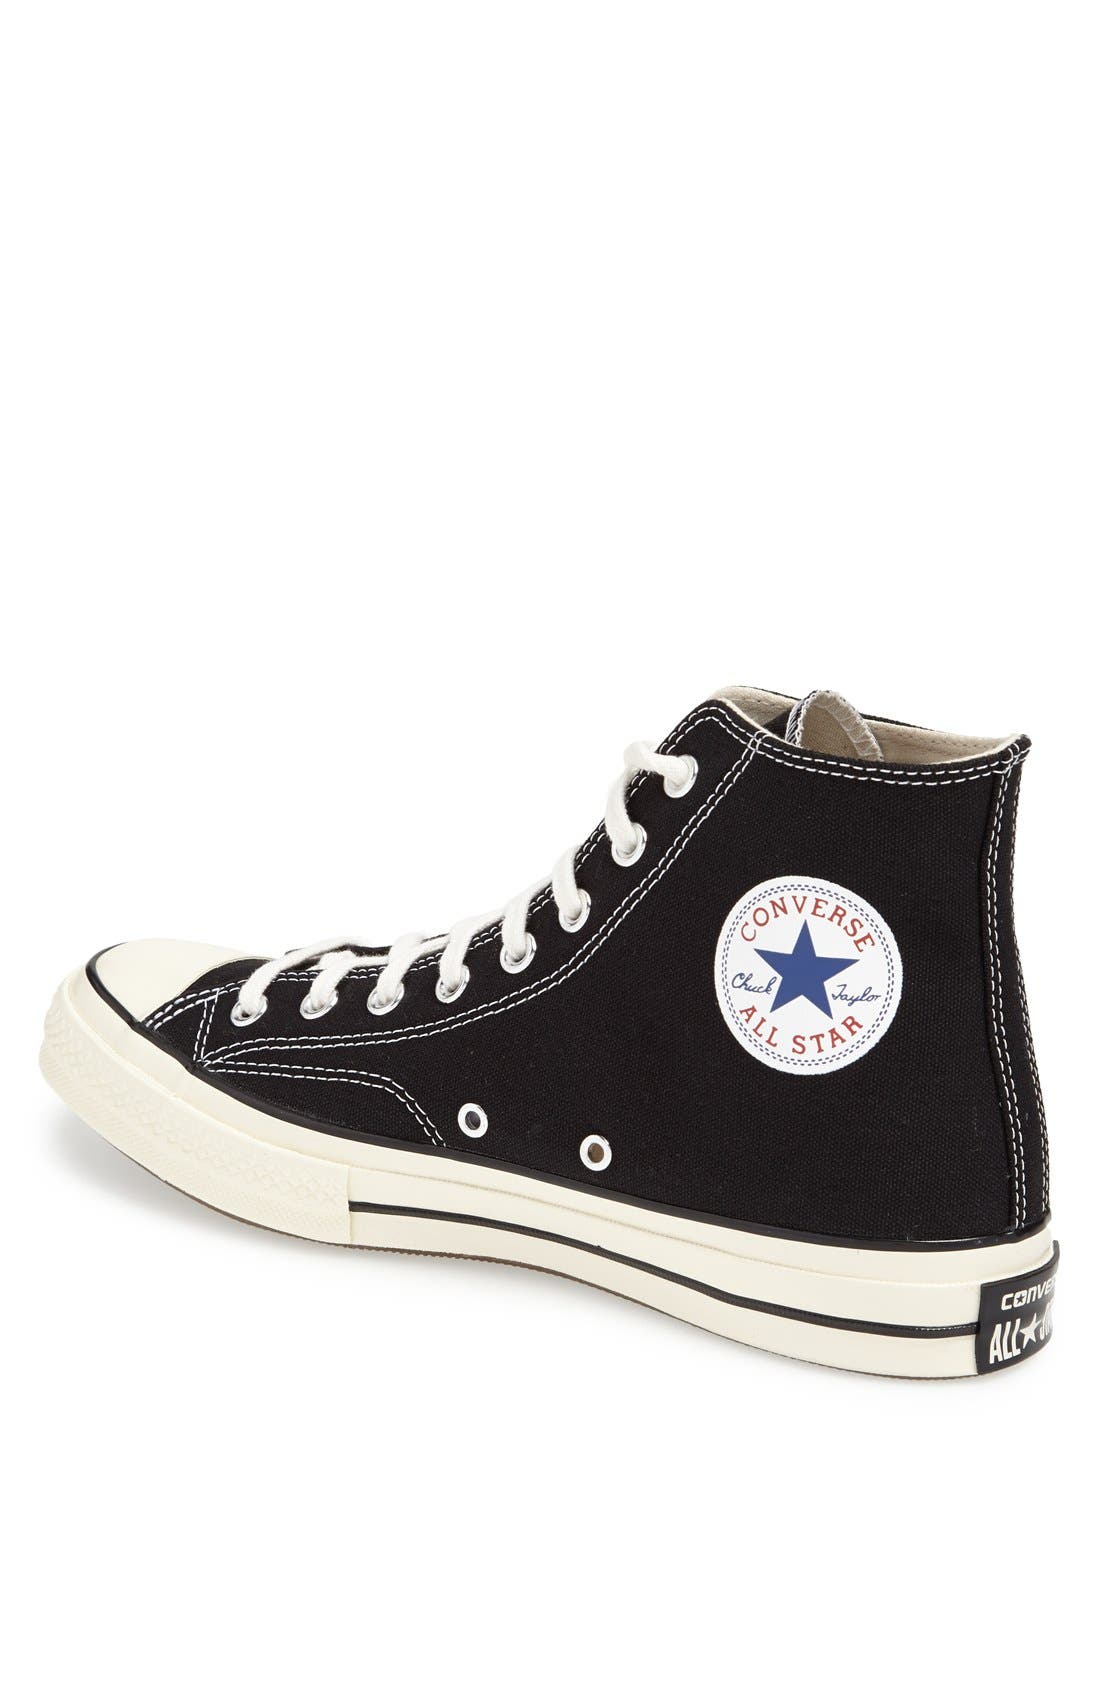 Chuck Taylor<sup>®</sup> All Star<sup>®</sup> '70 High Sneaker,                             Alternate thumbnail 2, color,                             Black